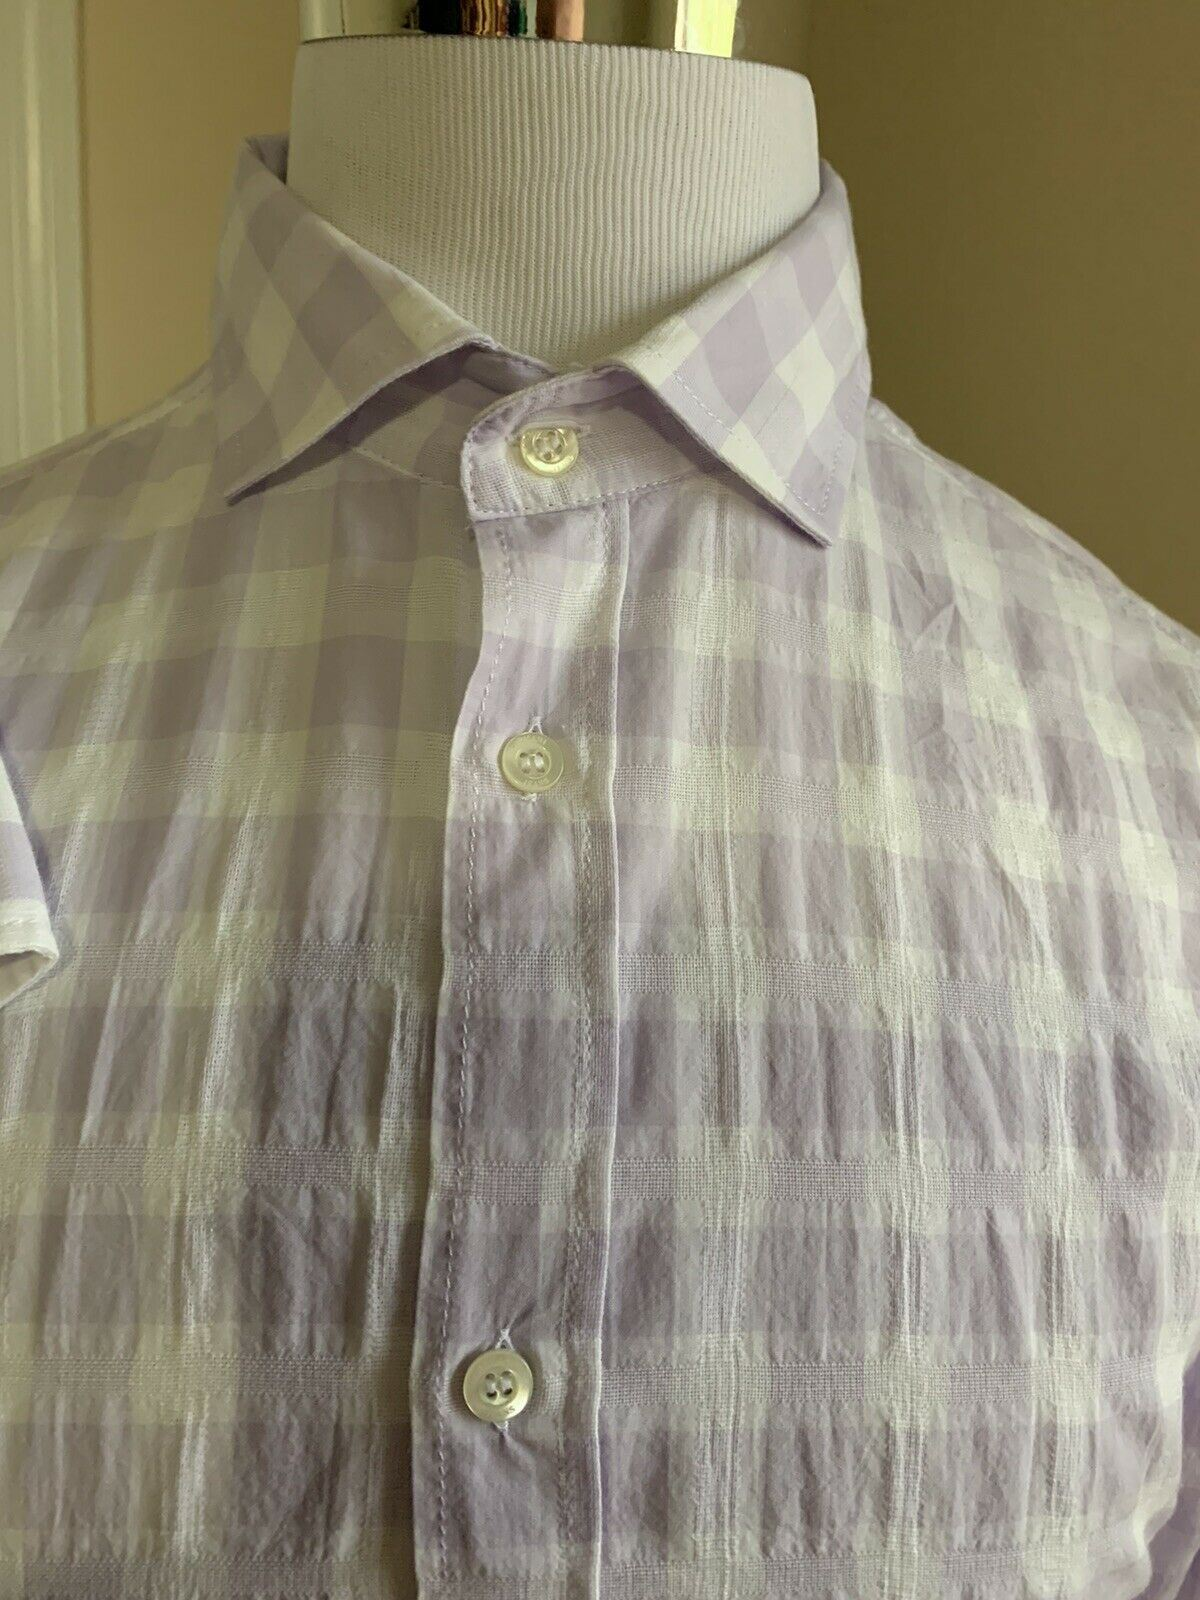 New $295 Armani Jeans Mens Dress Shirt White/Purple Size XXL